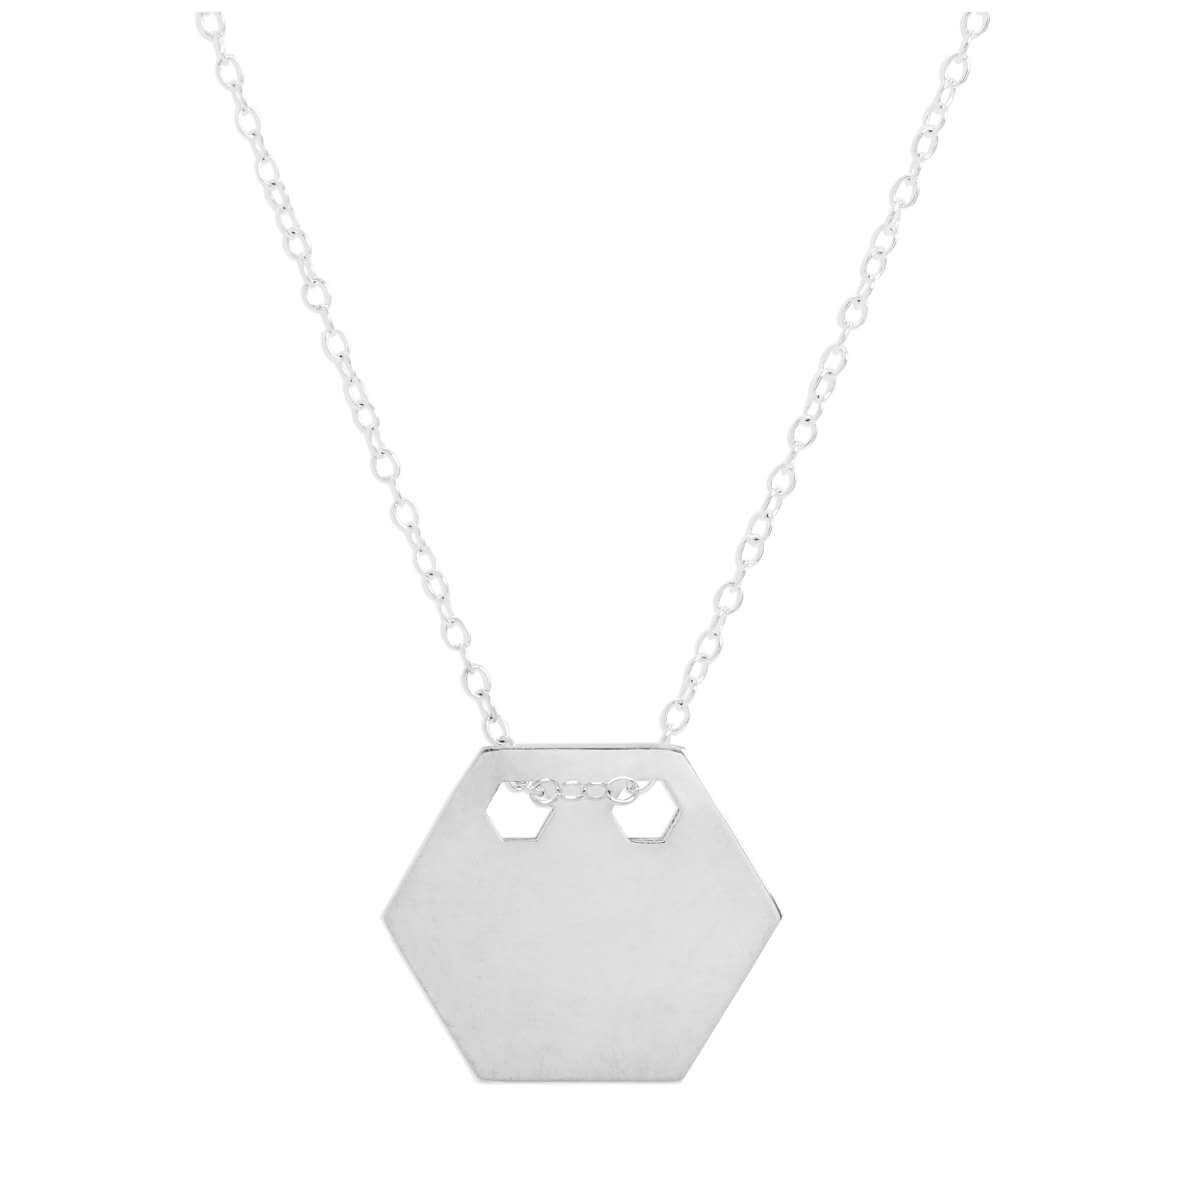 Sterling Silver Engravable Flat Hexagon Pendant Necklace 14 - 22 Inches